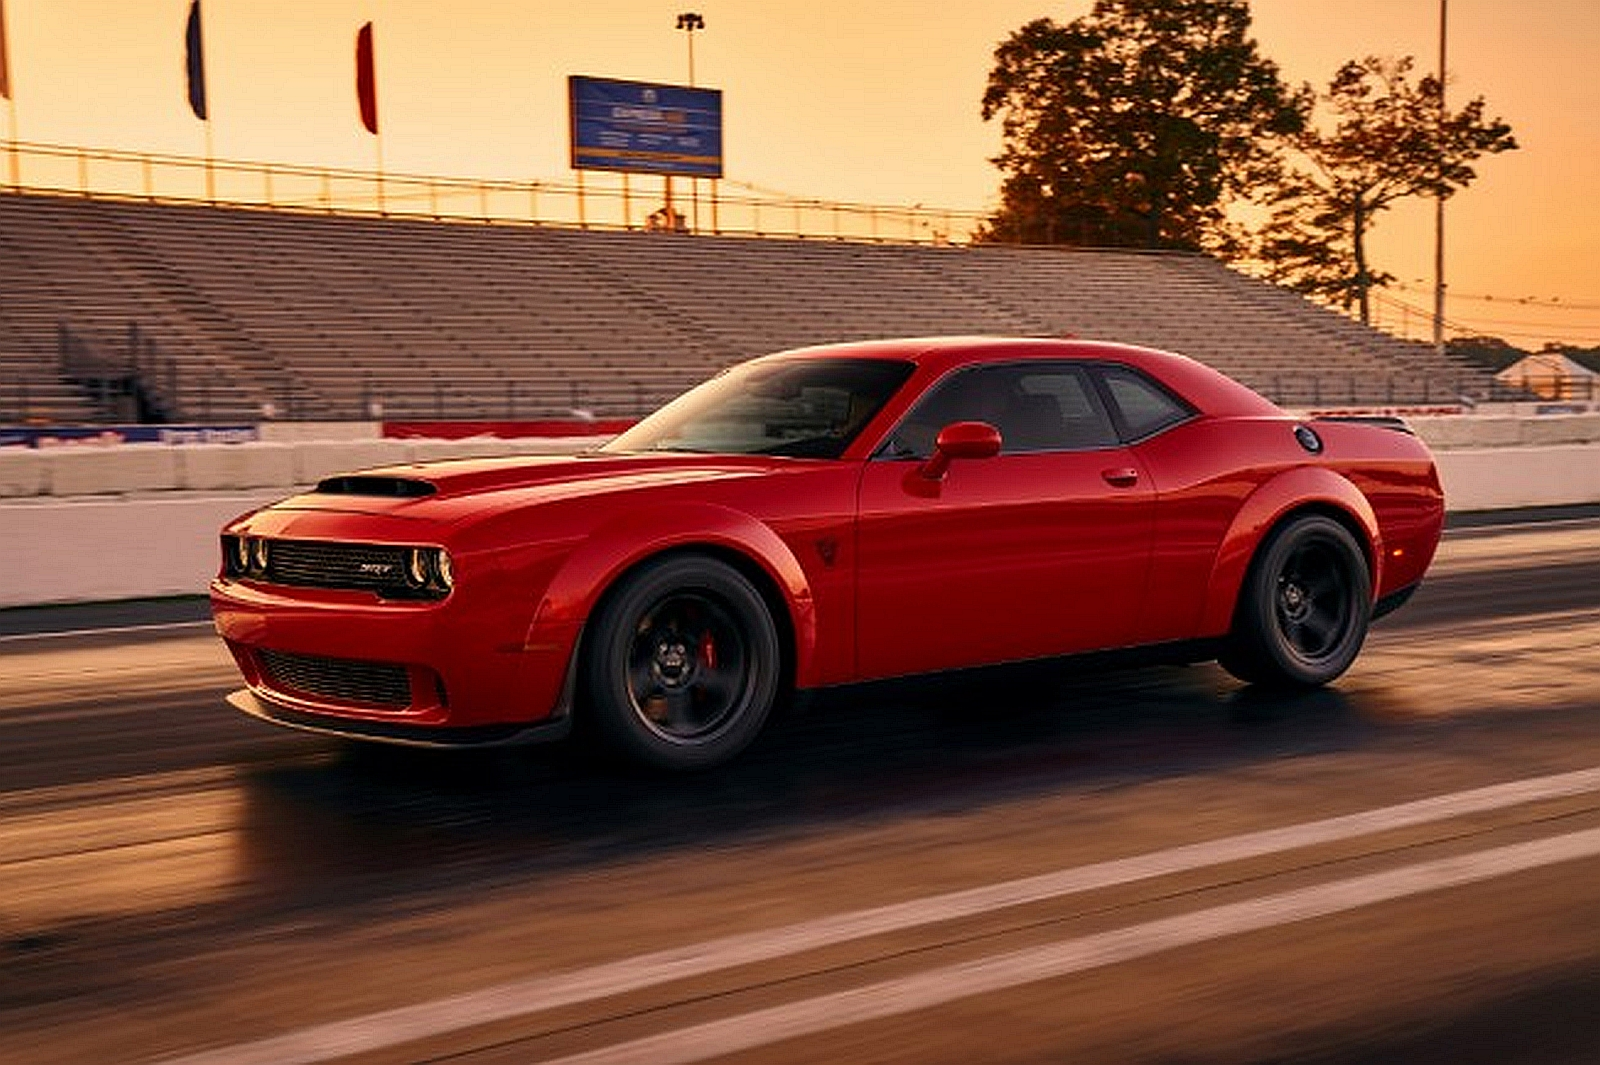 dodge challenger heritage edition with 2017 New York Preview New Dodge Challenger Srt Demon on Dodge Charger Blackout Edition together with 2018 Dodge Colors also Viper Hennessey Supercharged 3 in addition Exterior 39063859 together with Hurst Heritage Gss Ram The Truck With Muscle Car Attitude.